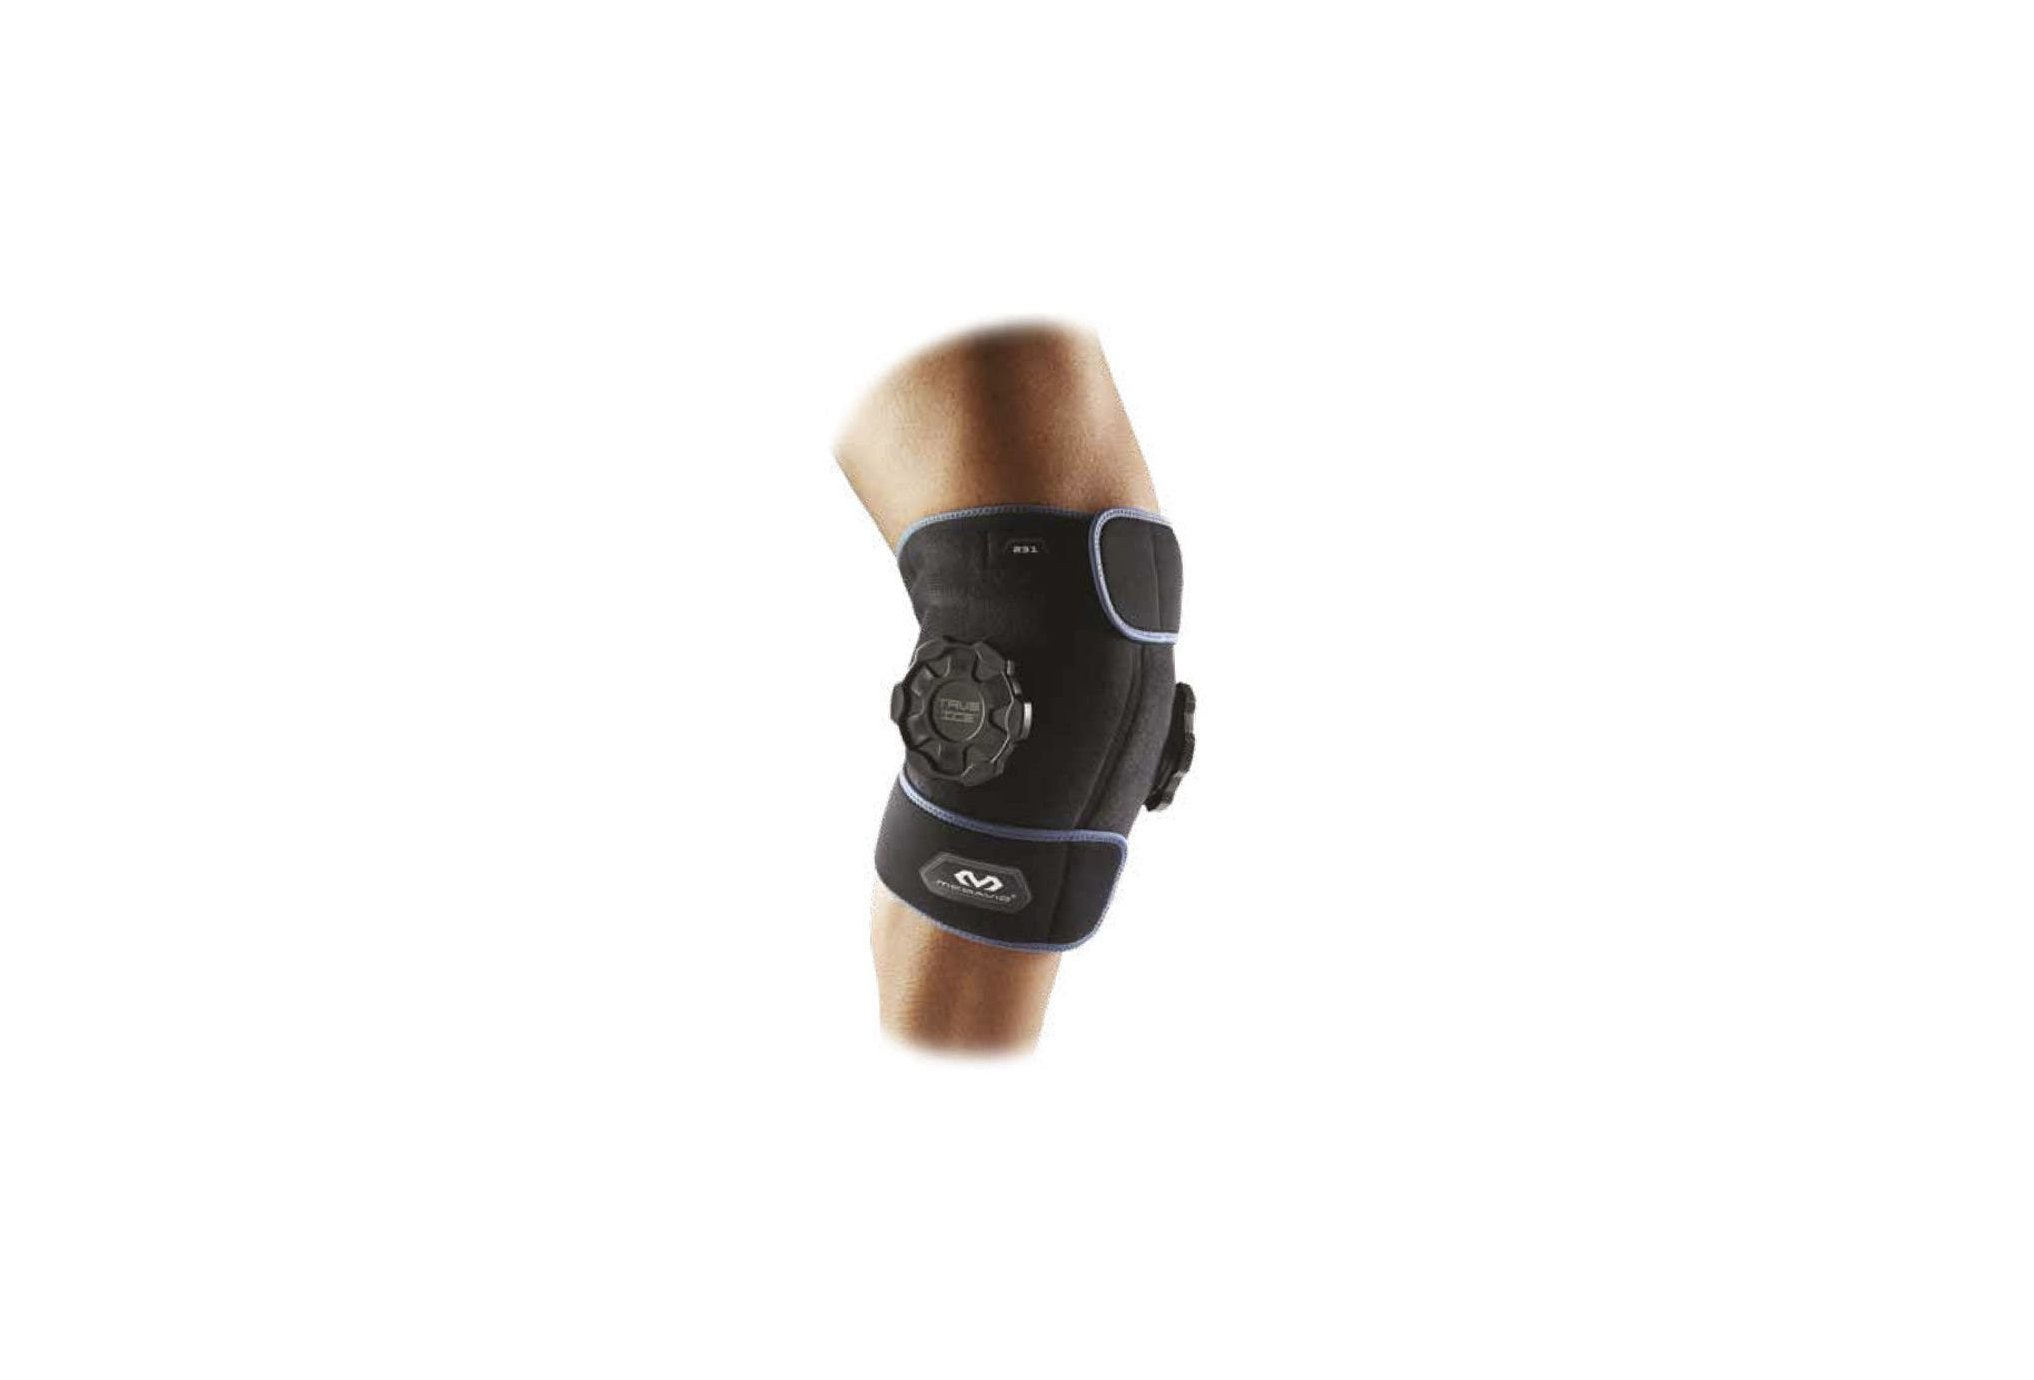 McDavid True Ice Therapy Knee Protection musculaire & articulaire